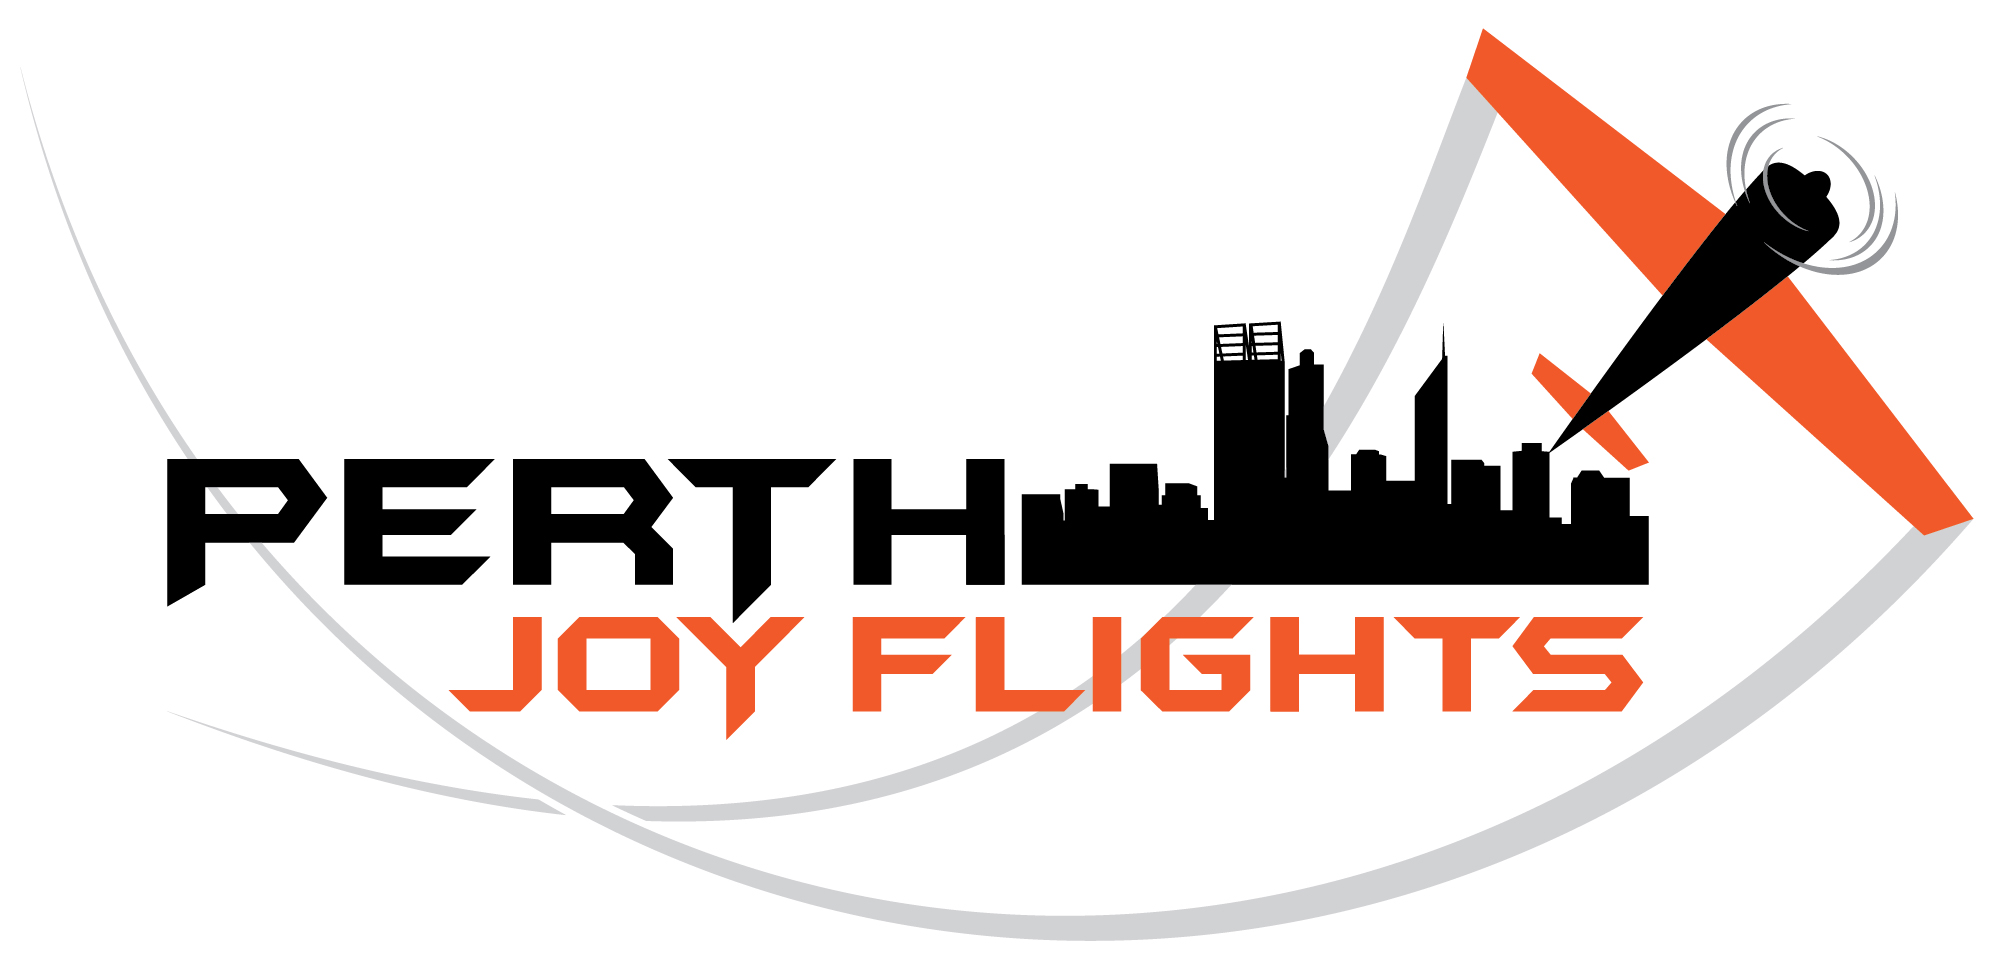 Perth Joy Flights